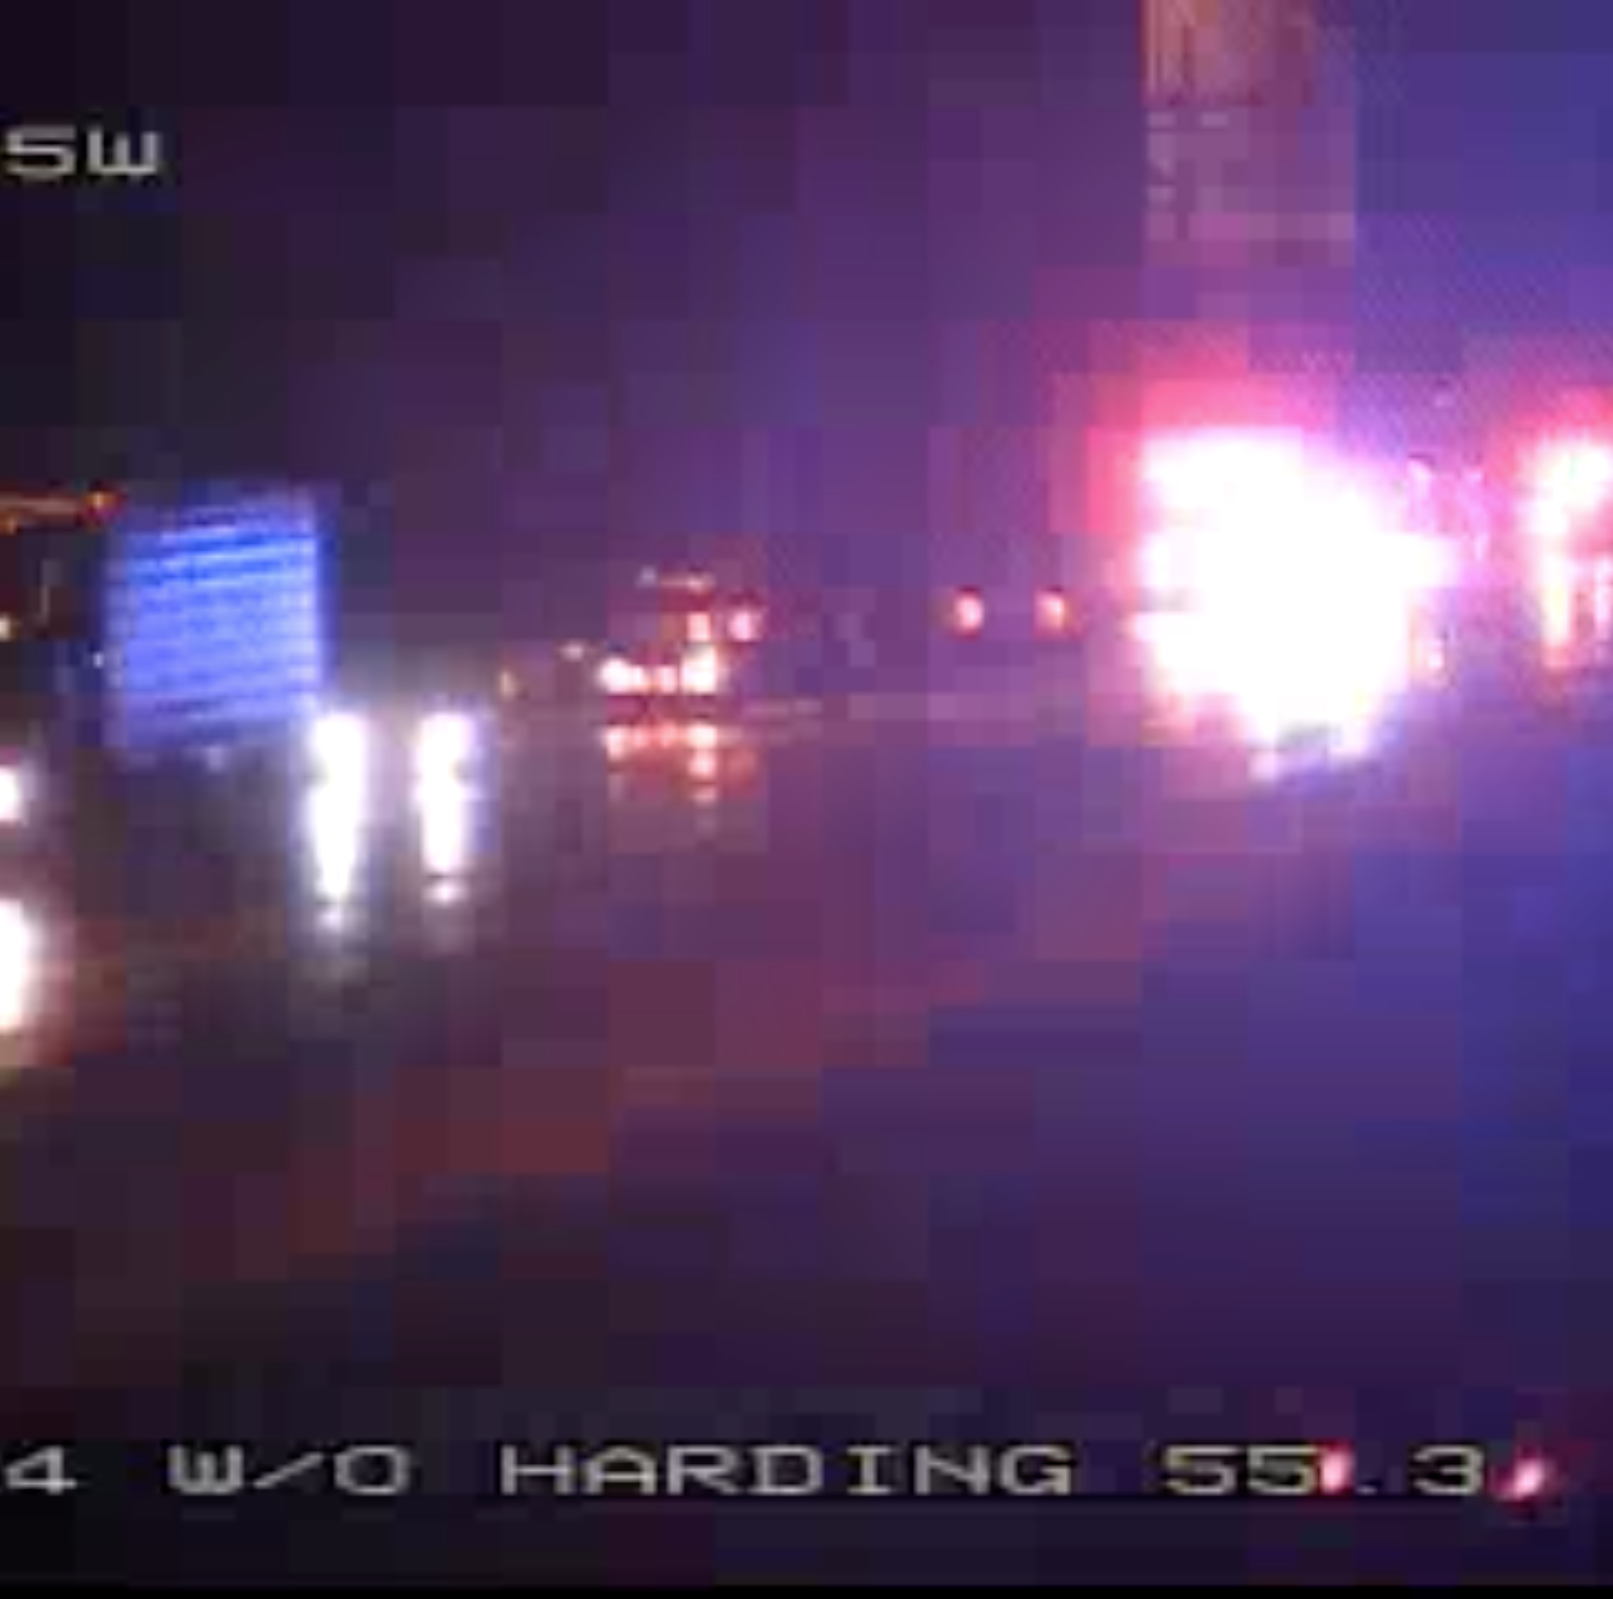 I-24 eastbound closed at Harding Place after vehicle catches fire